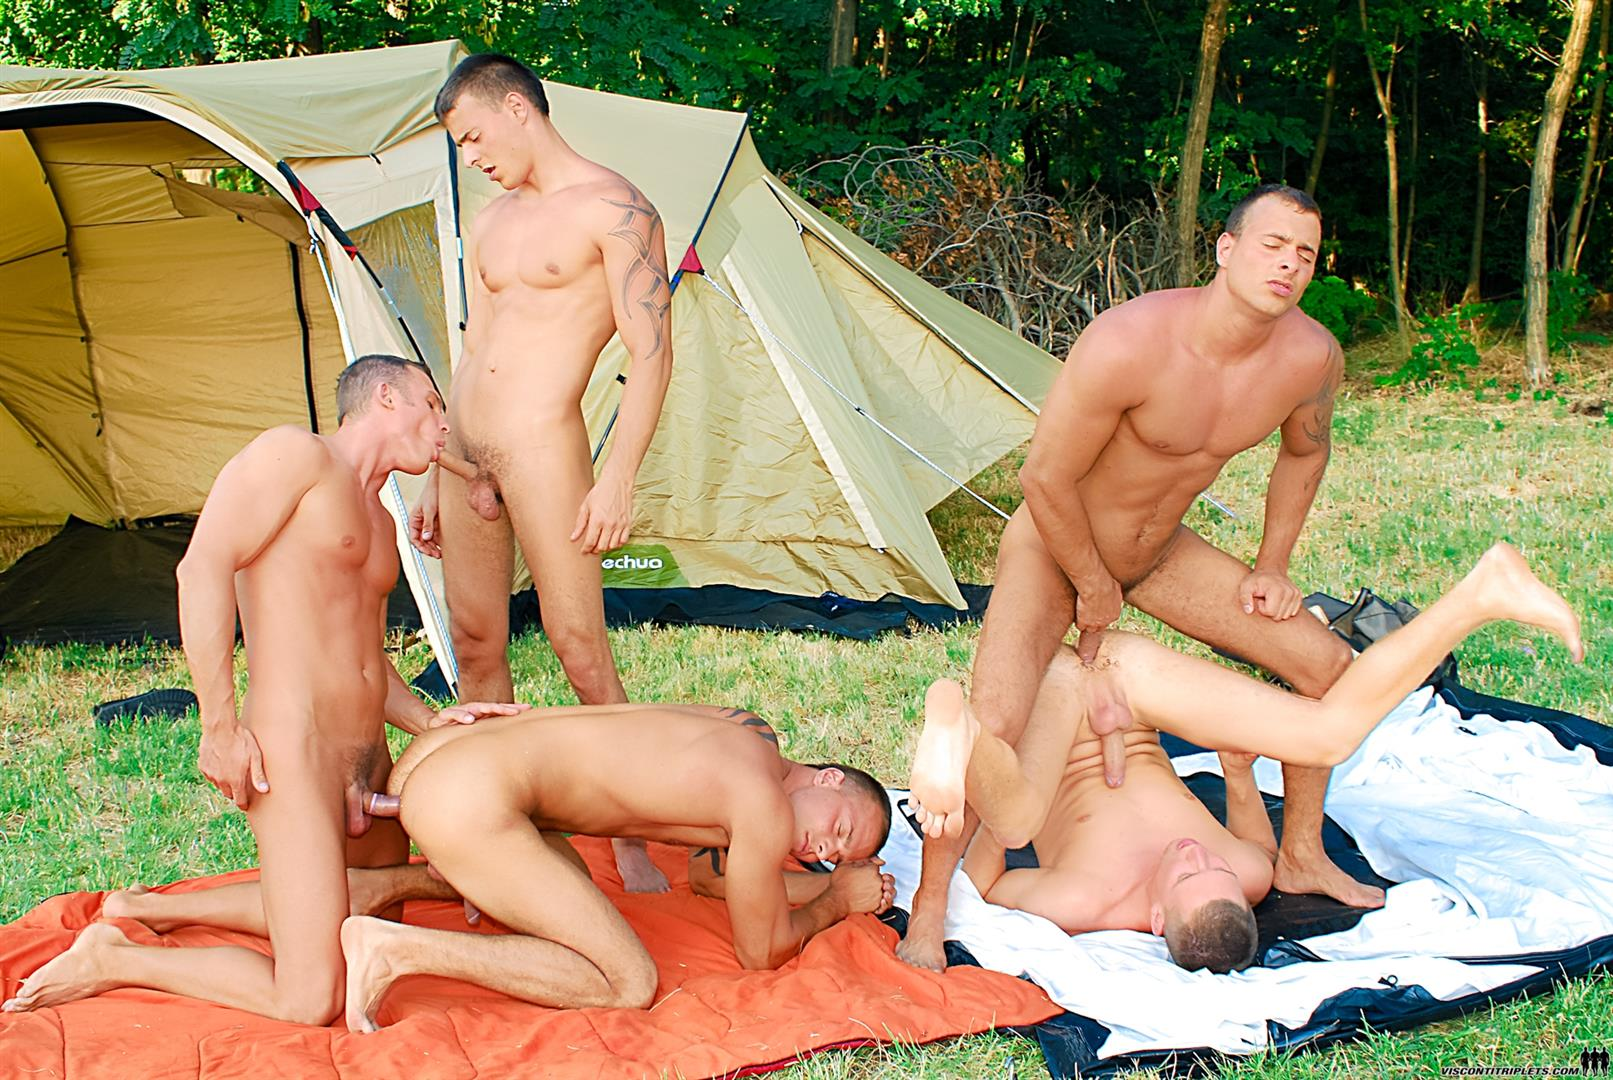 Visconti Triplets Jason Visconti Jimmy Visconti Joey Visconti Giuseppe Pardi Fucking During A Camping Trip Amateur Gay Porn 07 Visconti Triplets Tag Team Some Muscle Ass While Camping